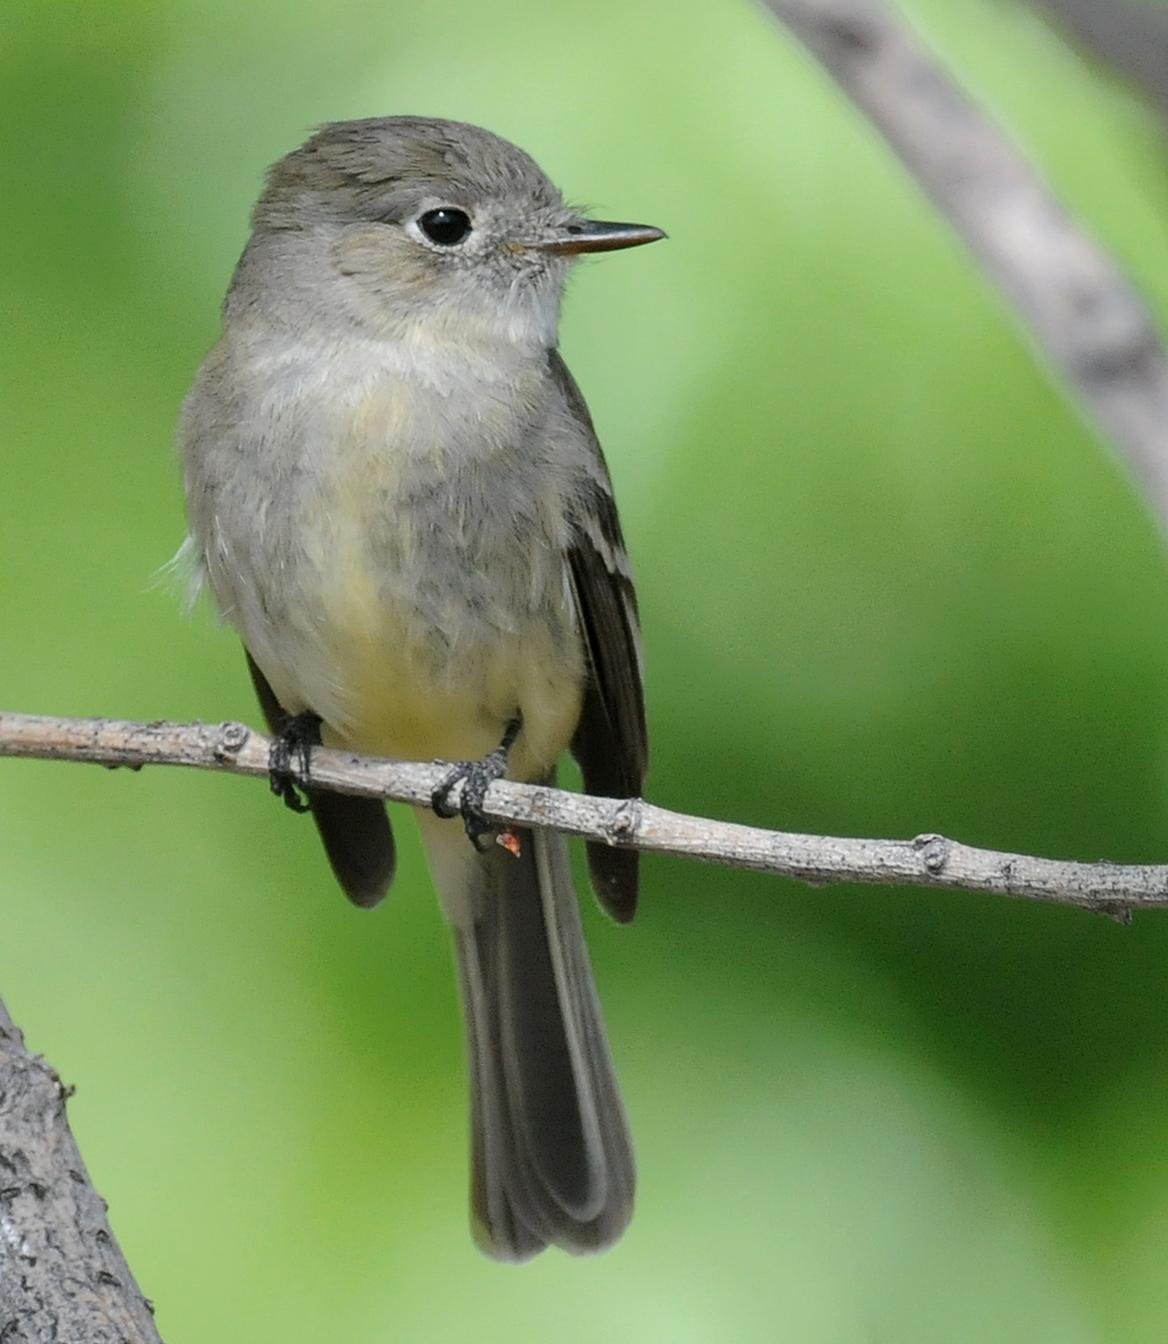 Dusky Flycatcher Photo by Steven Mlodinow